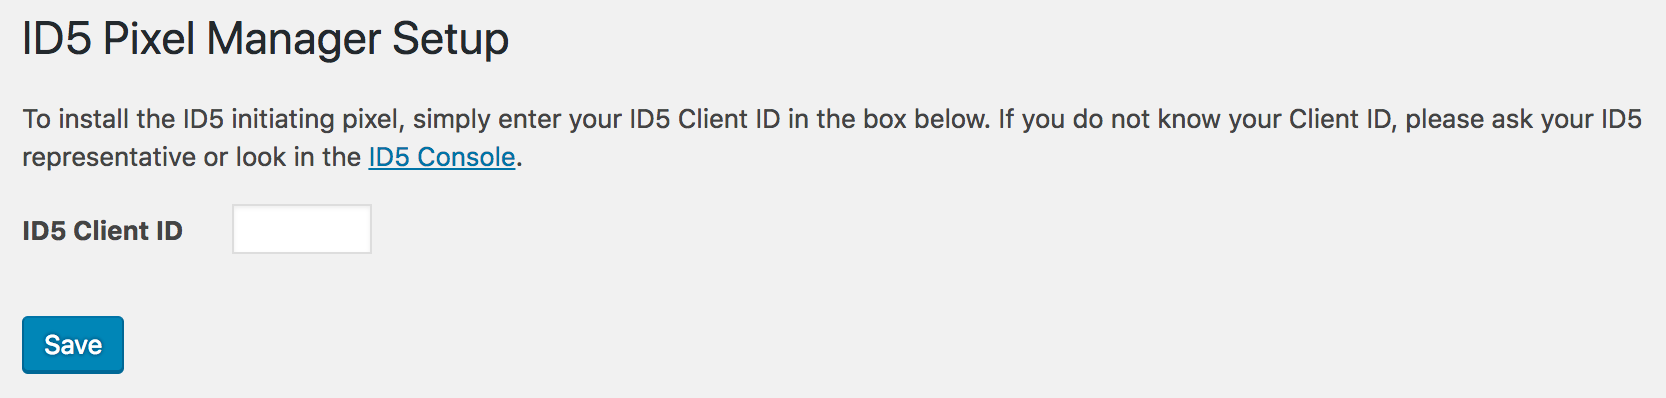 Head to the settings page where you'll be able to enter your ID5 Account Number